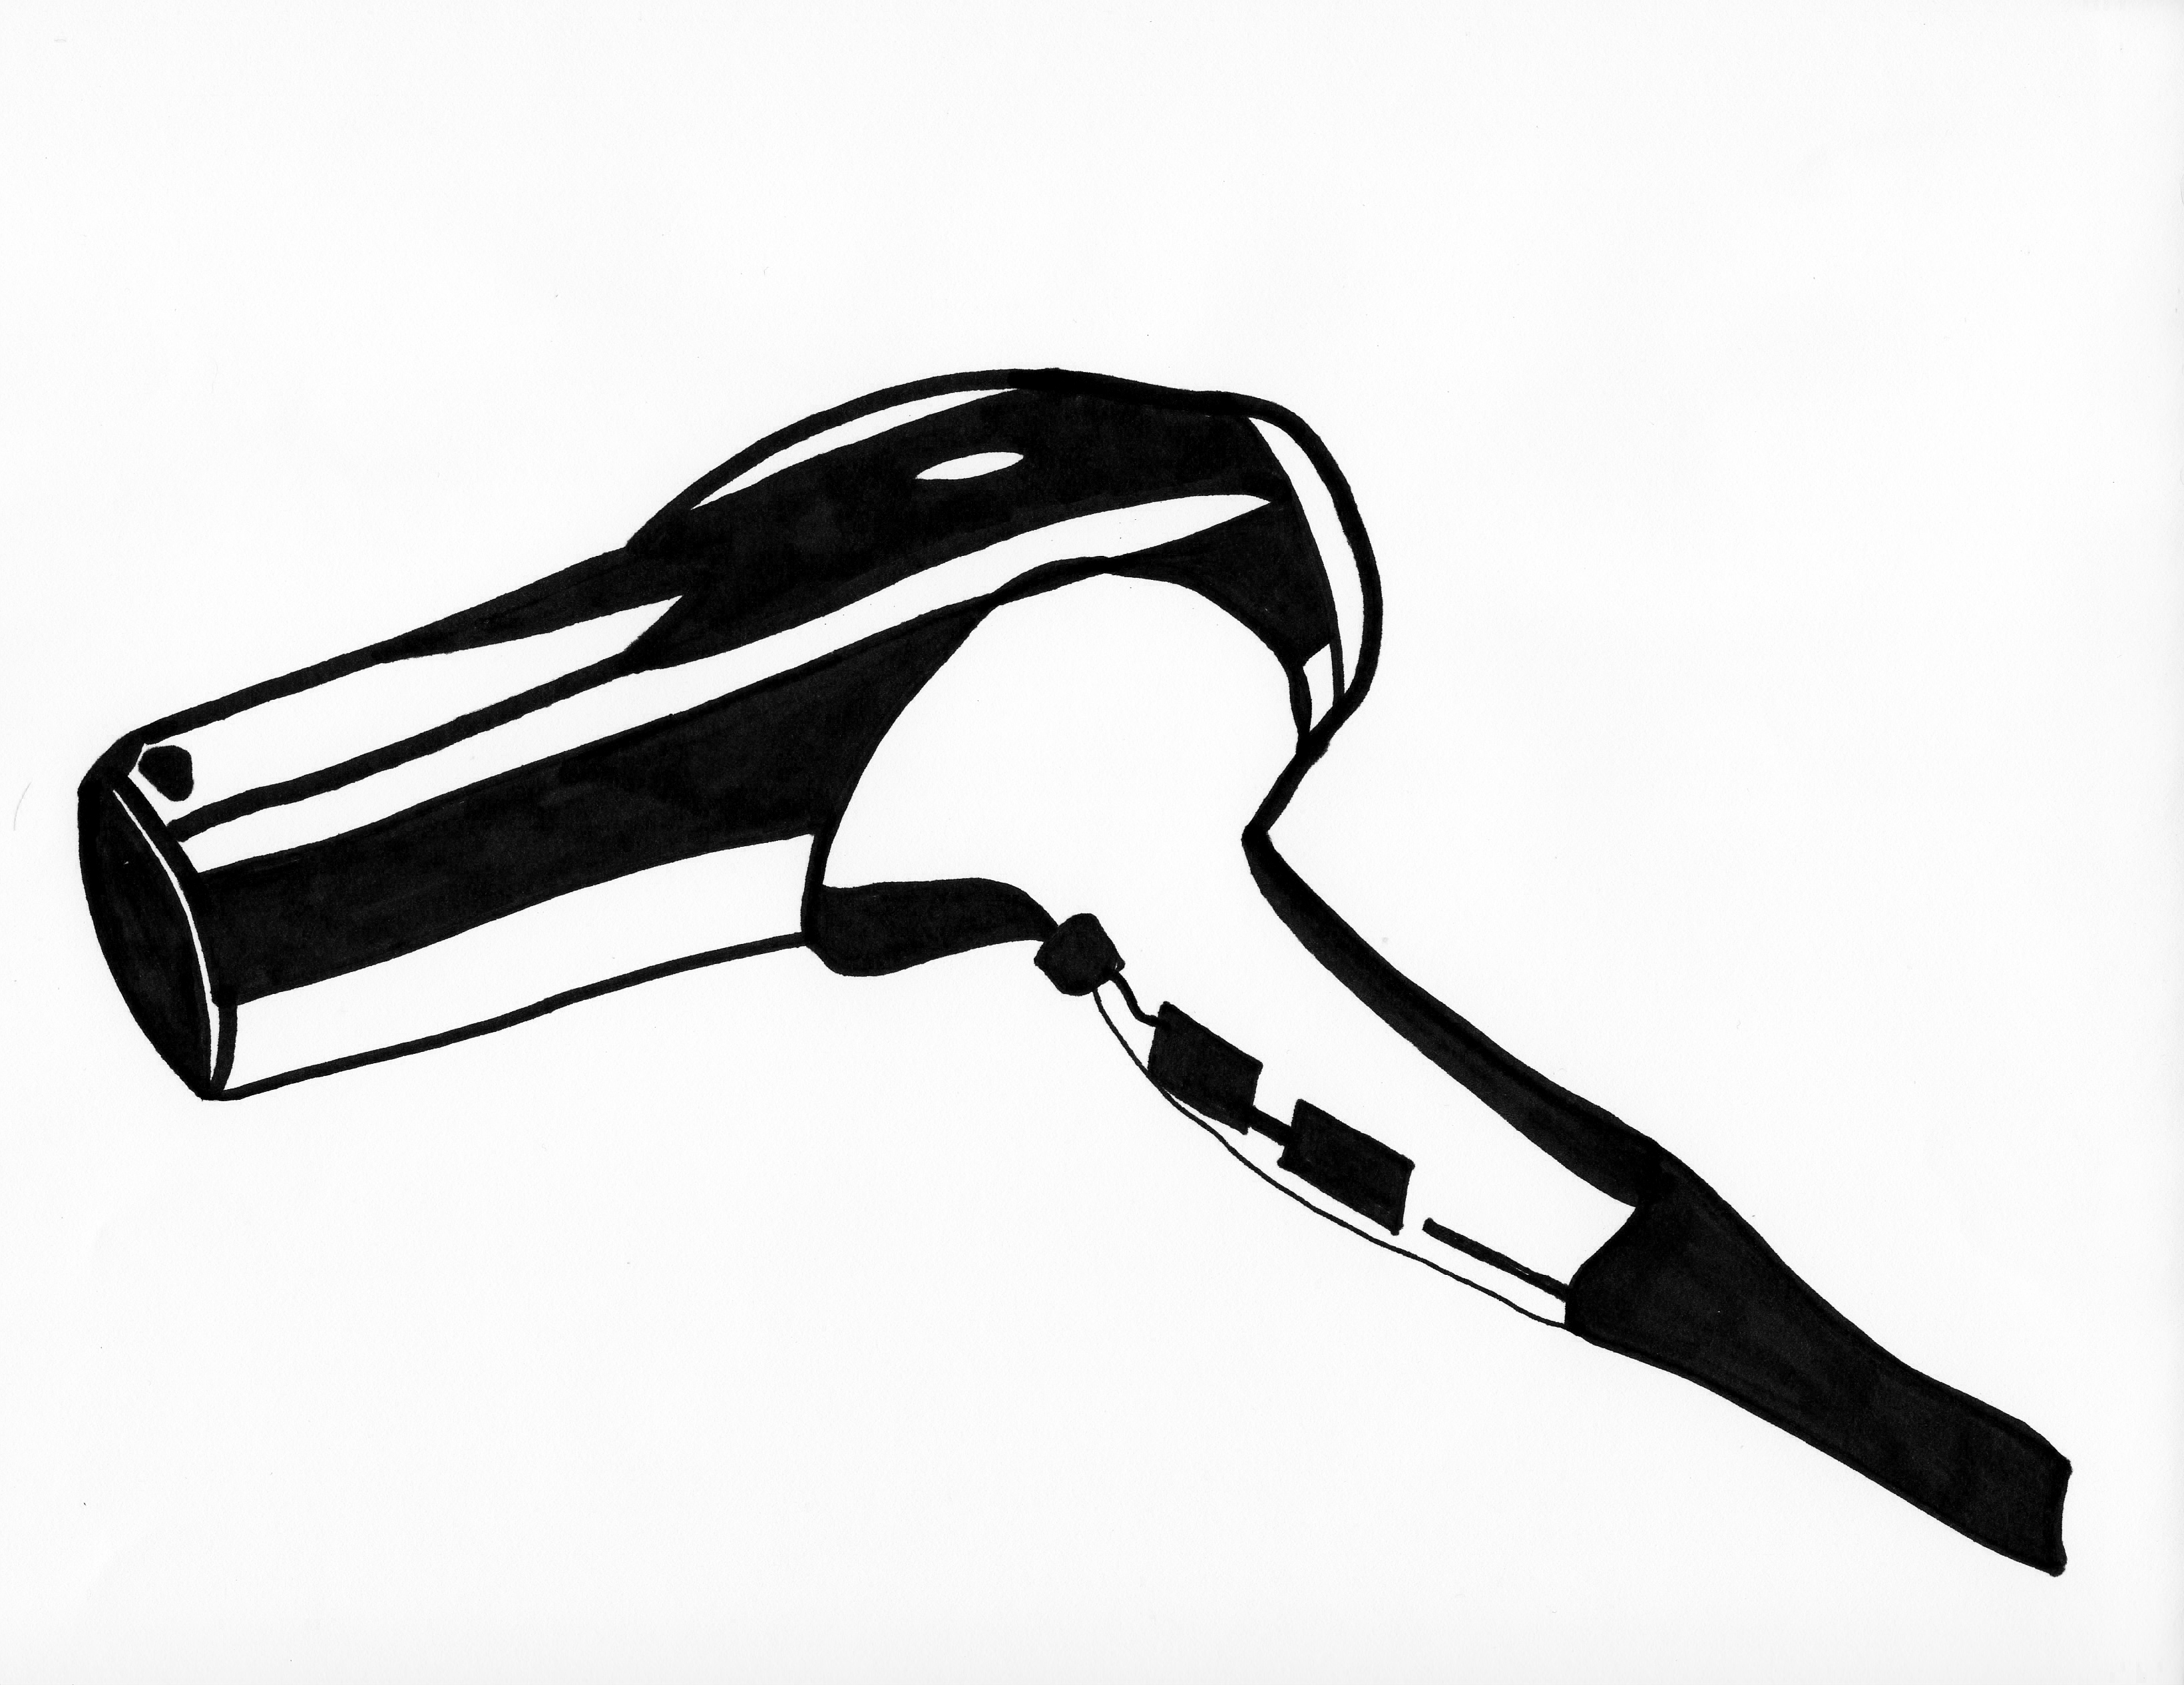 Blow Dryer Clip Art